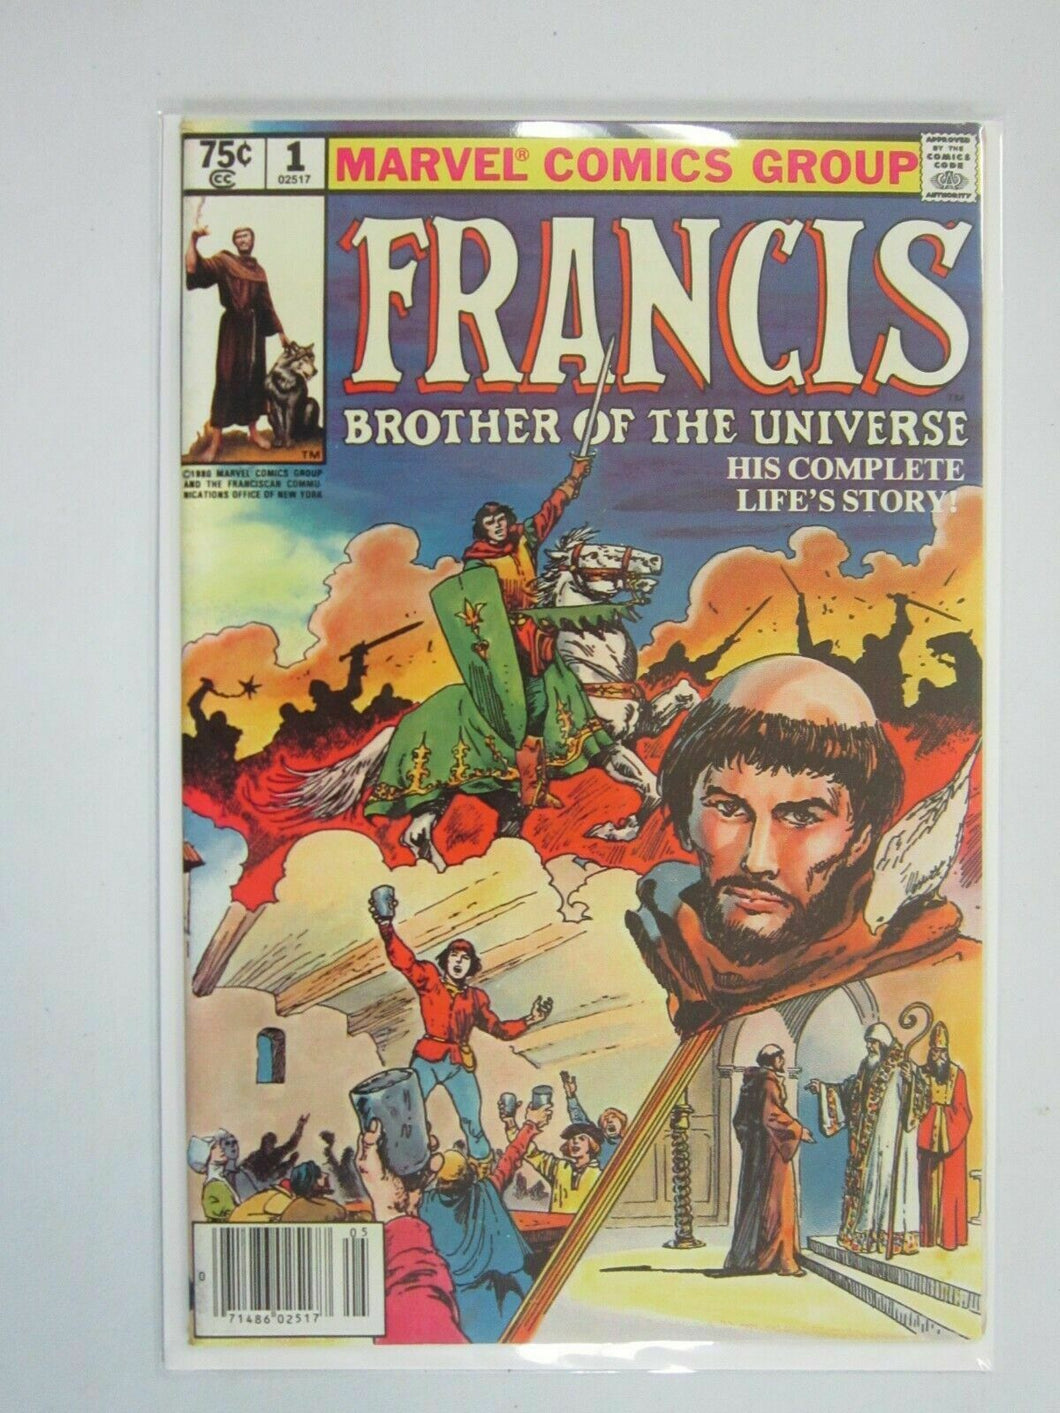 Francis Brother of the Universe #1 8.0 VF (1980)